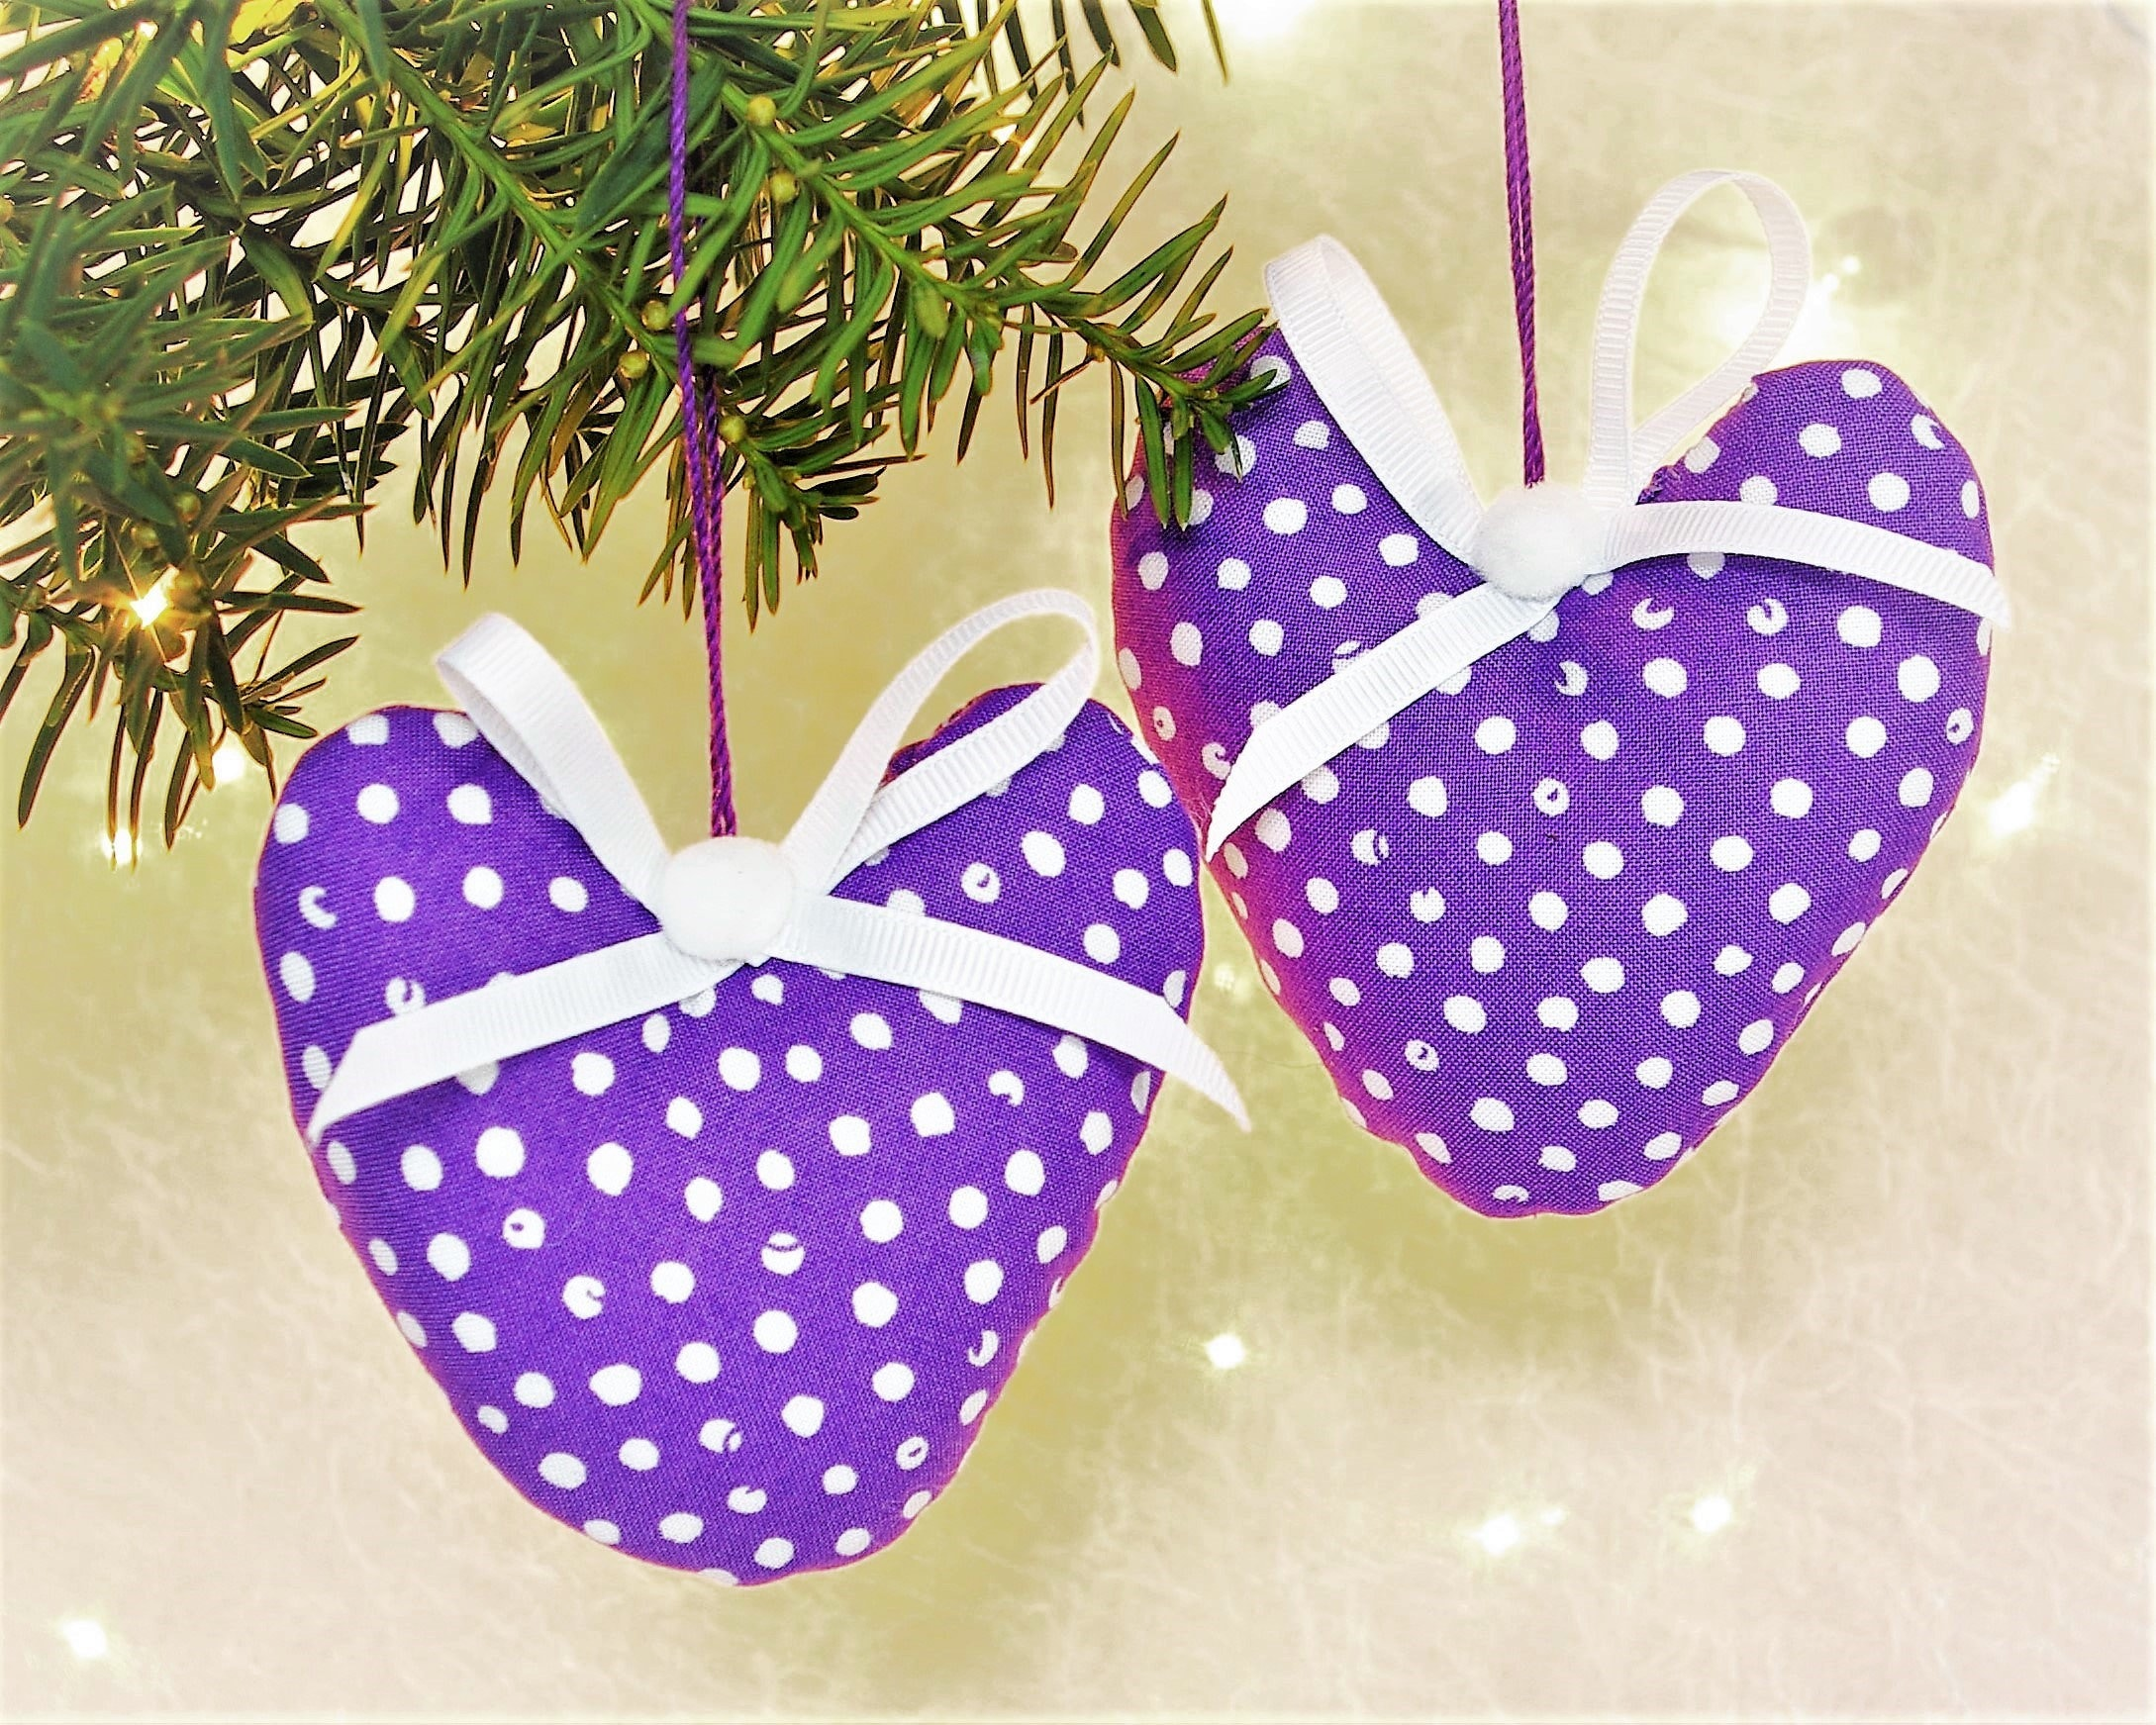 purple heart decorations lilac christmas decorations gallery photo gallery photo gallery photo gallery photo gallery photo